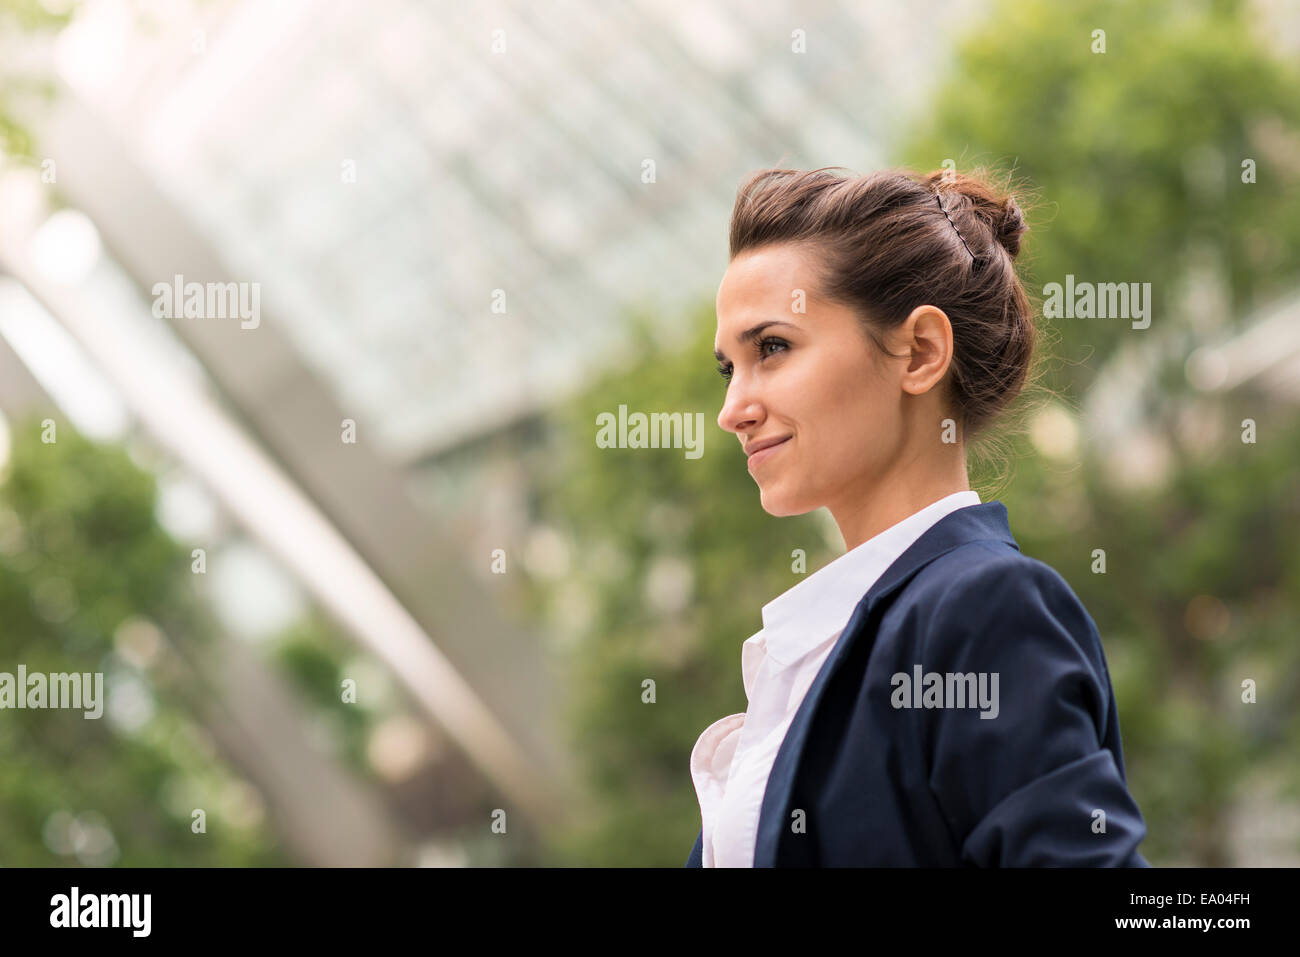 Businesswoman at Broadgate Tower, London, UK Photo Stock